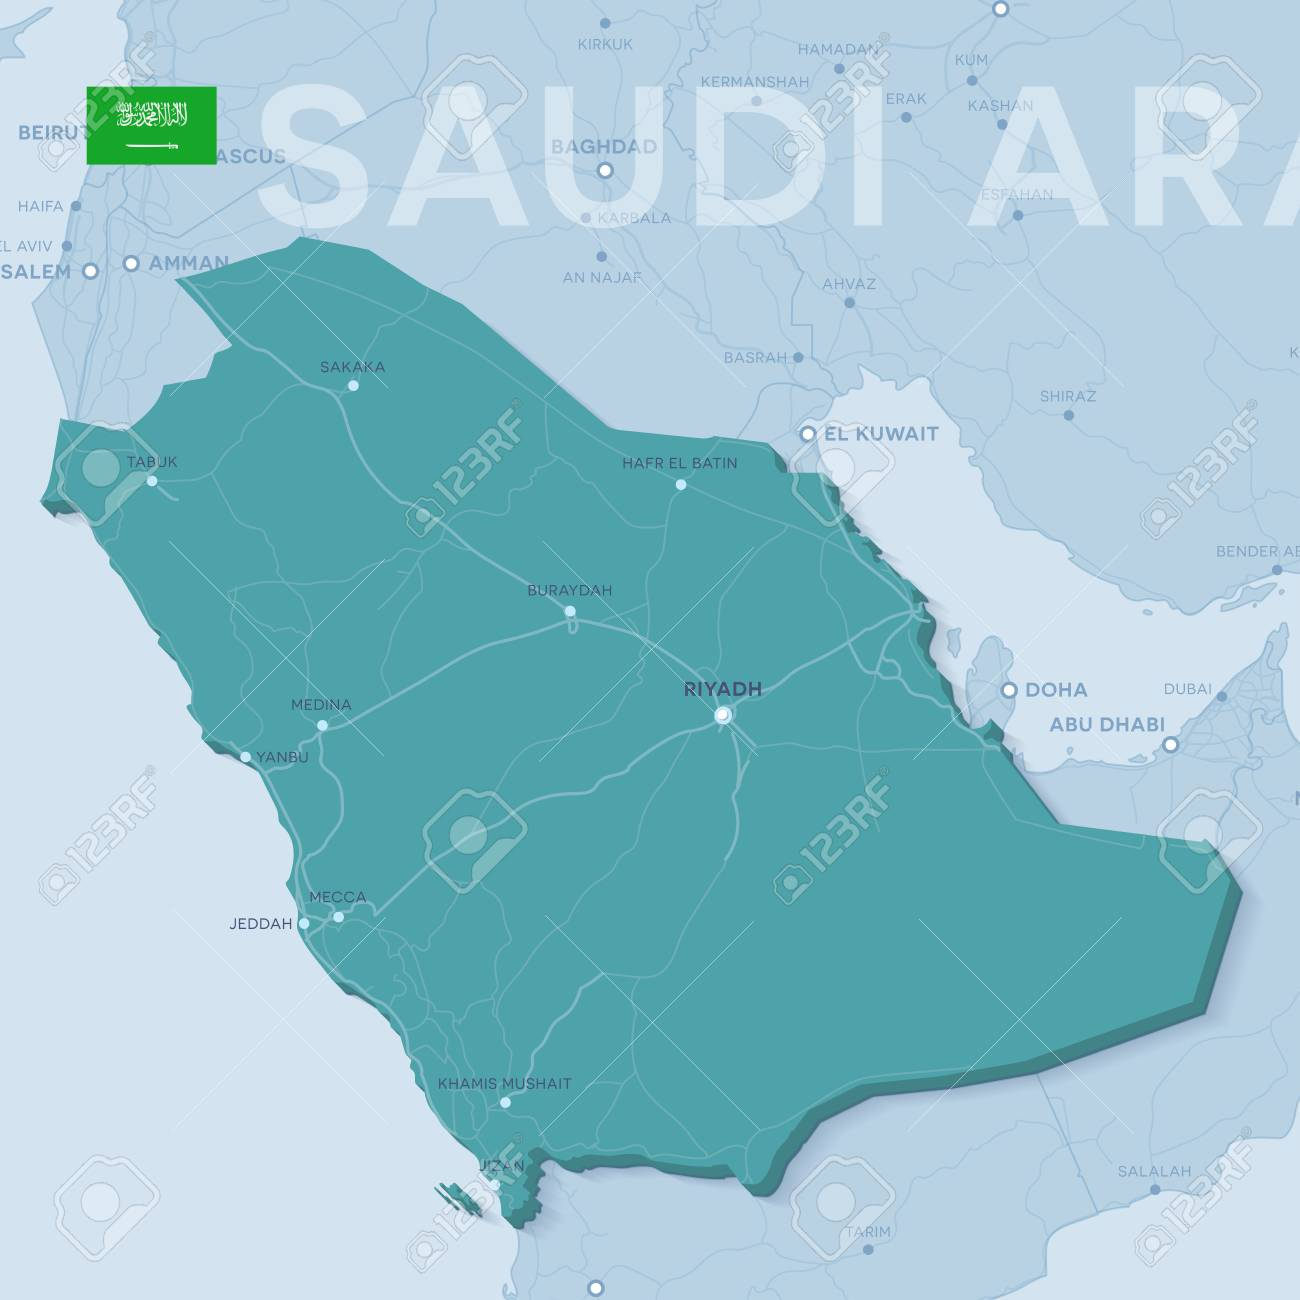 3d verctor map of cities and roads in Asia. Saudi Arabia and.. on south africa map, tunisia map, kuwait map, dubai map, iraq map, oman map, bangladesh map, germany map, yemen map, soviet union map, syria map, philippines map, singapore map, sudan map, japan map, morocco map, jordan map, ksa map, bahrain map, china map,